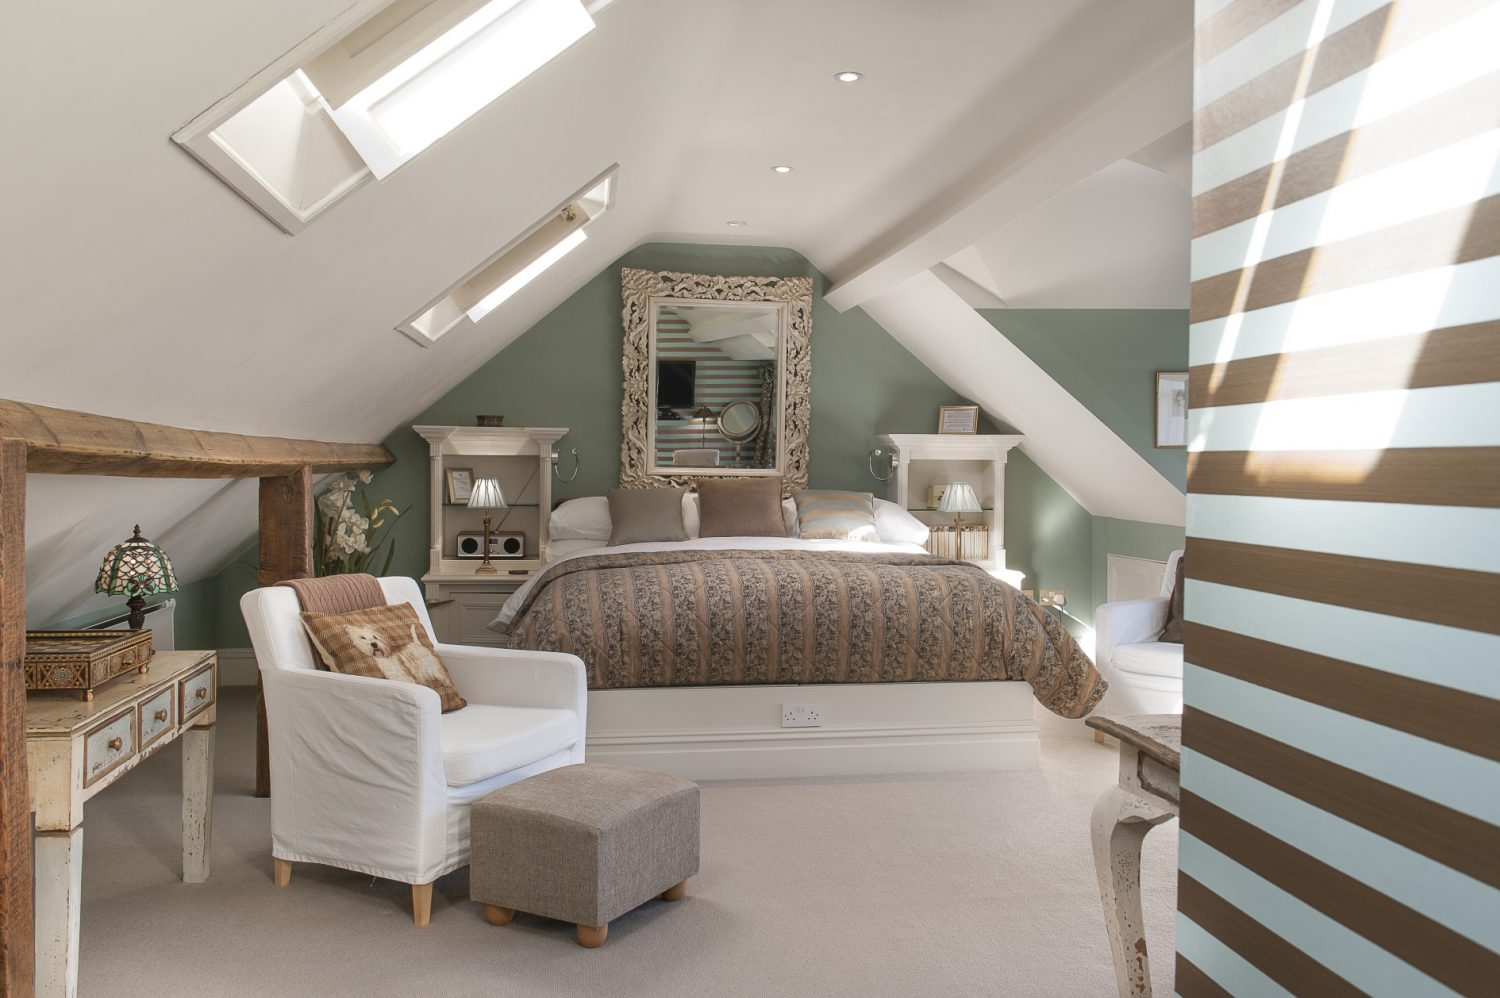 Above Keynes, Sackville is tucked away in the eaves, its vaulted ceiling and clever shutters over the Velux windows providing serious romance. An ornate hand-carved mirror, bought in Battle 30 years ago, hangs above the huge bed